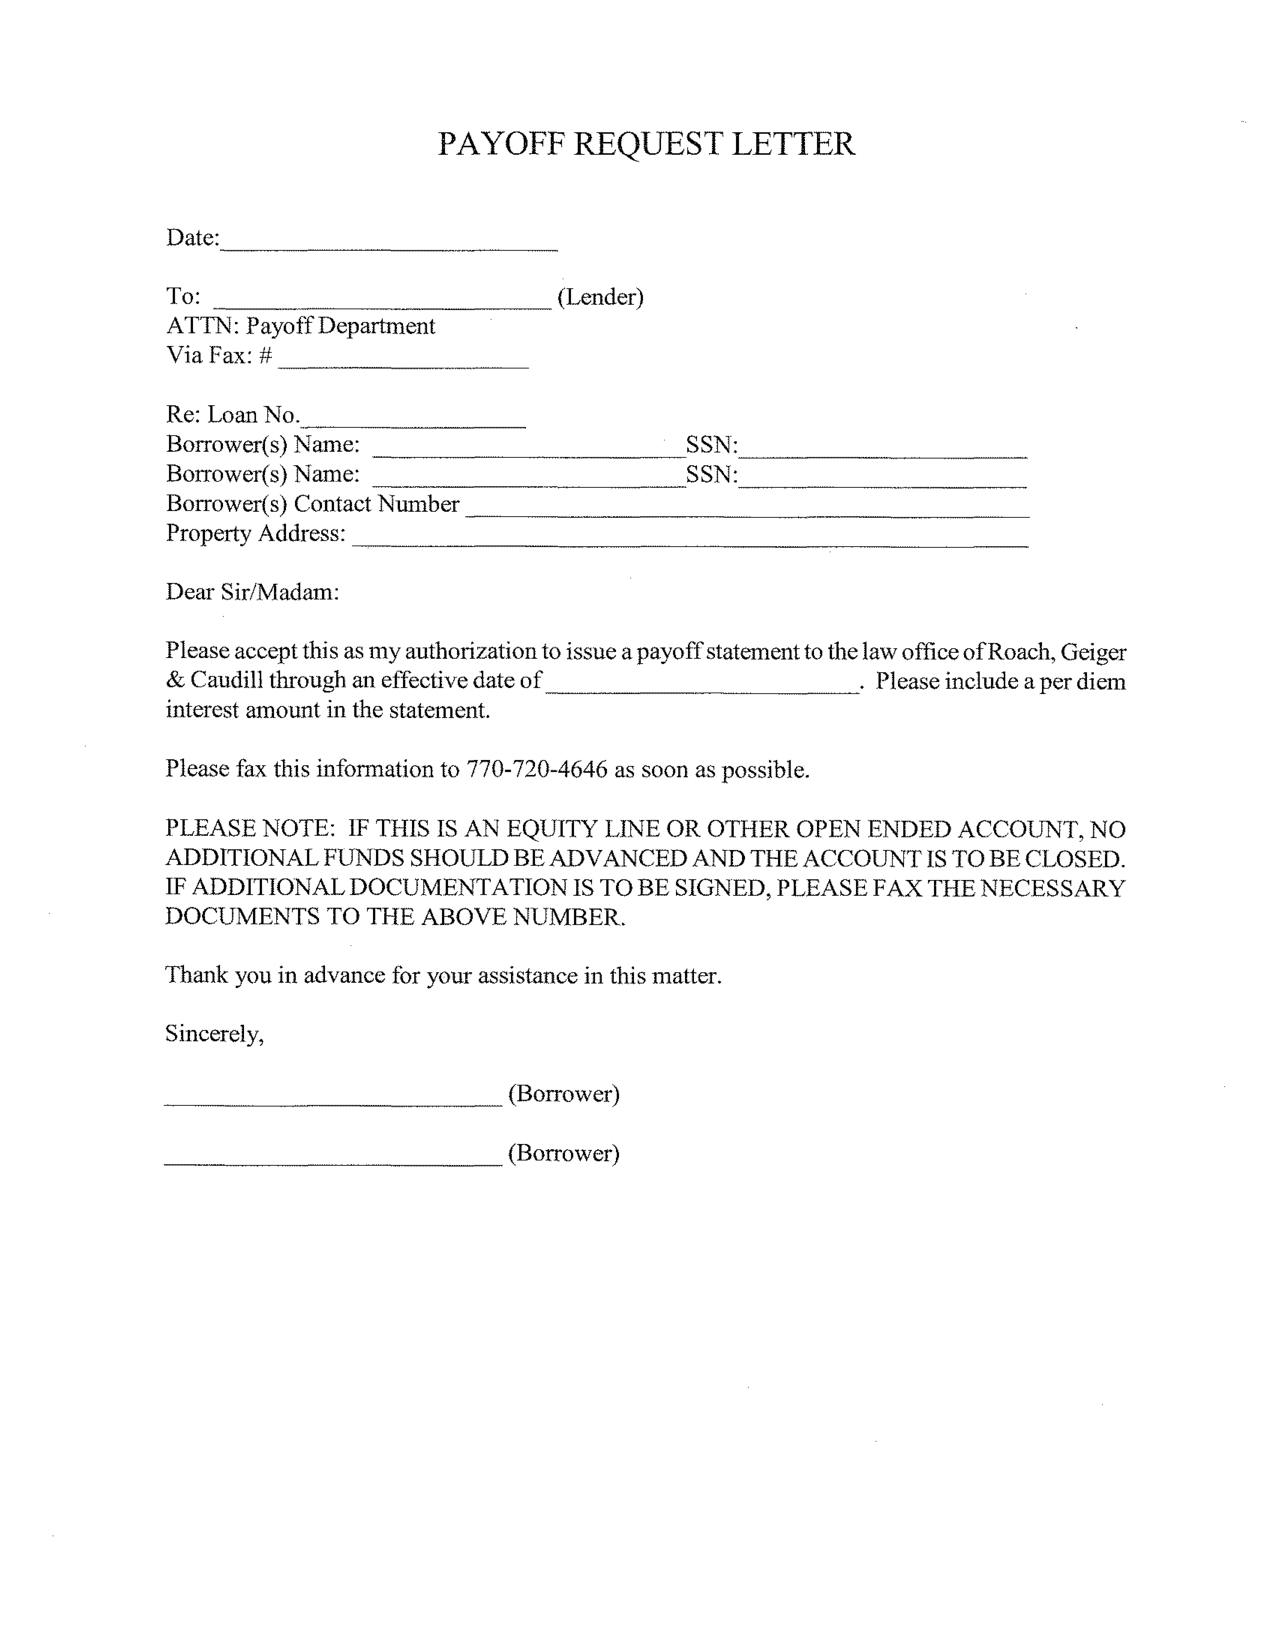 STATEMENT REQUEST LETTER - Example Letter Requesting a ...